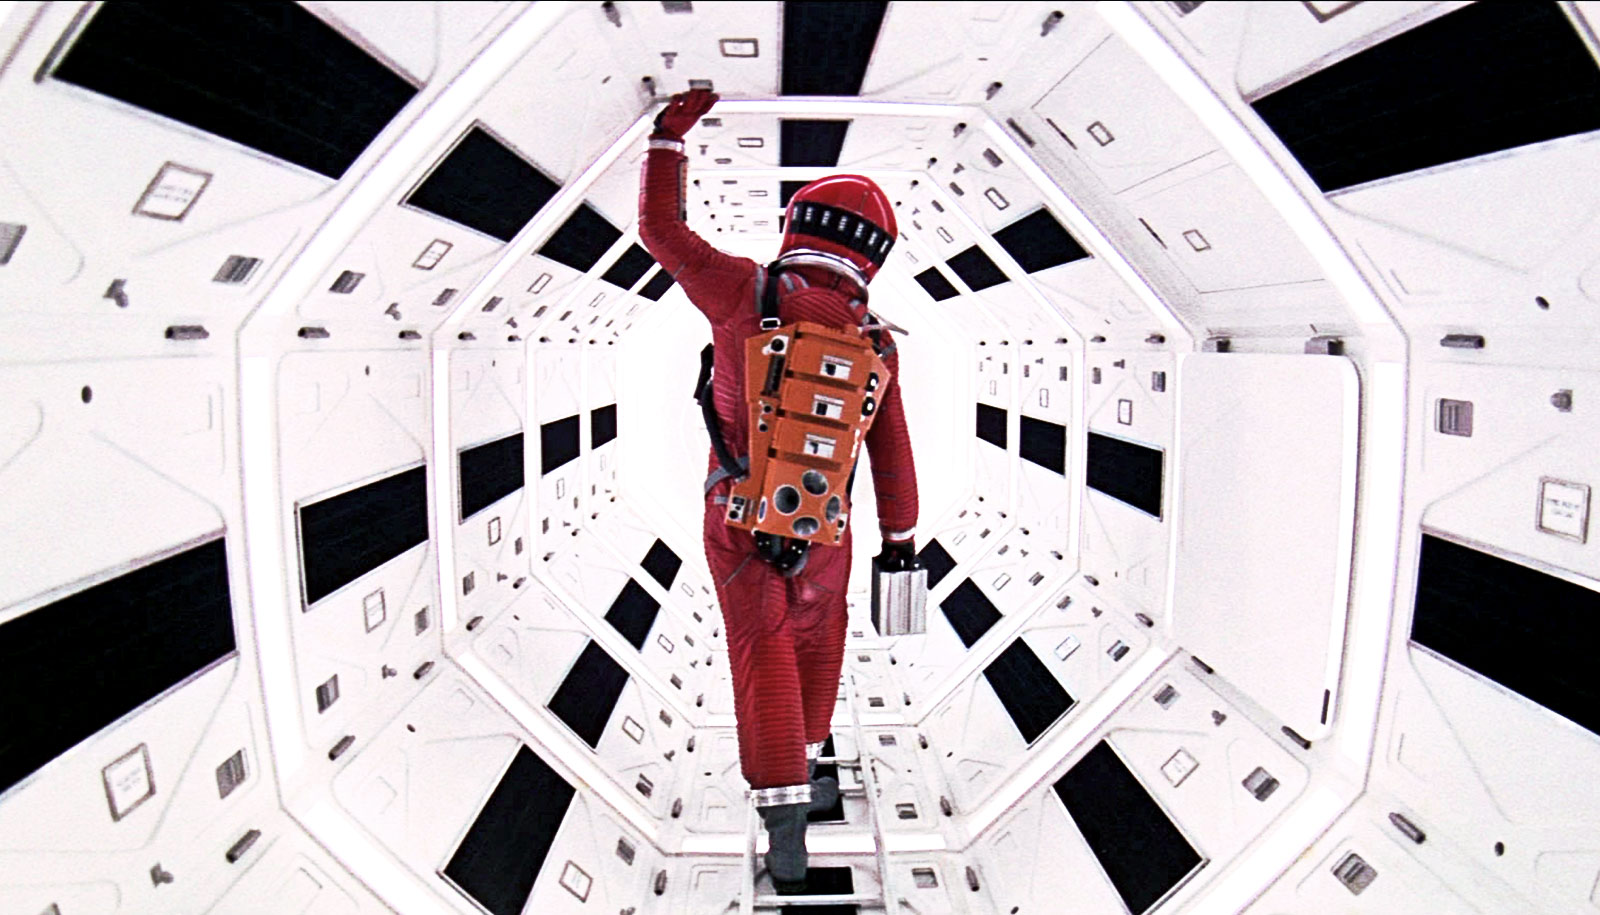 2001: A SPACE ODYSSEY (1968) / MANHUNTER (1986 / 35mm Print) / SUSPIRIA (1977 / 4K DCP) / TWIN PEAKS: FIRE WALK WITH ME (1992 / DCP) - Fri Jan 25th & Sat Jan 26th / IFC Center, New York CityFrom Kubrick's interstellar trip to Micheal Mann's 1986 precursor to Silence of The Lambs, it's a fine collection to stay up late for. Please note: All movies are single sessions and commence at 11:59pm (2001 at 11:50pm)More info HERE